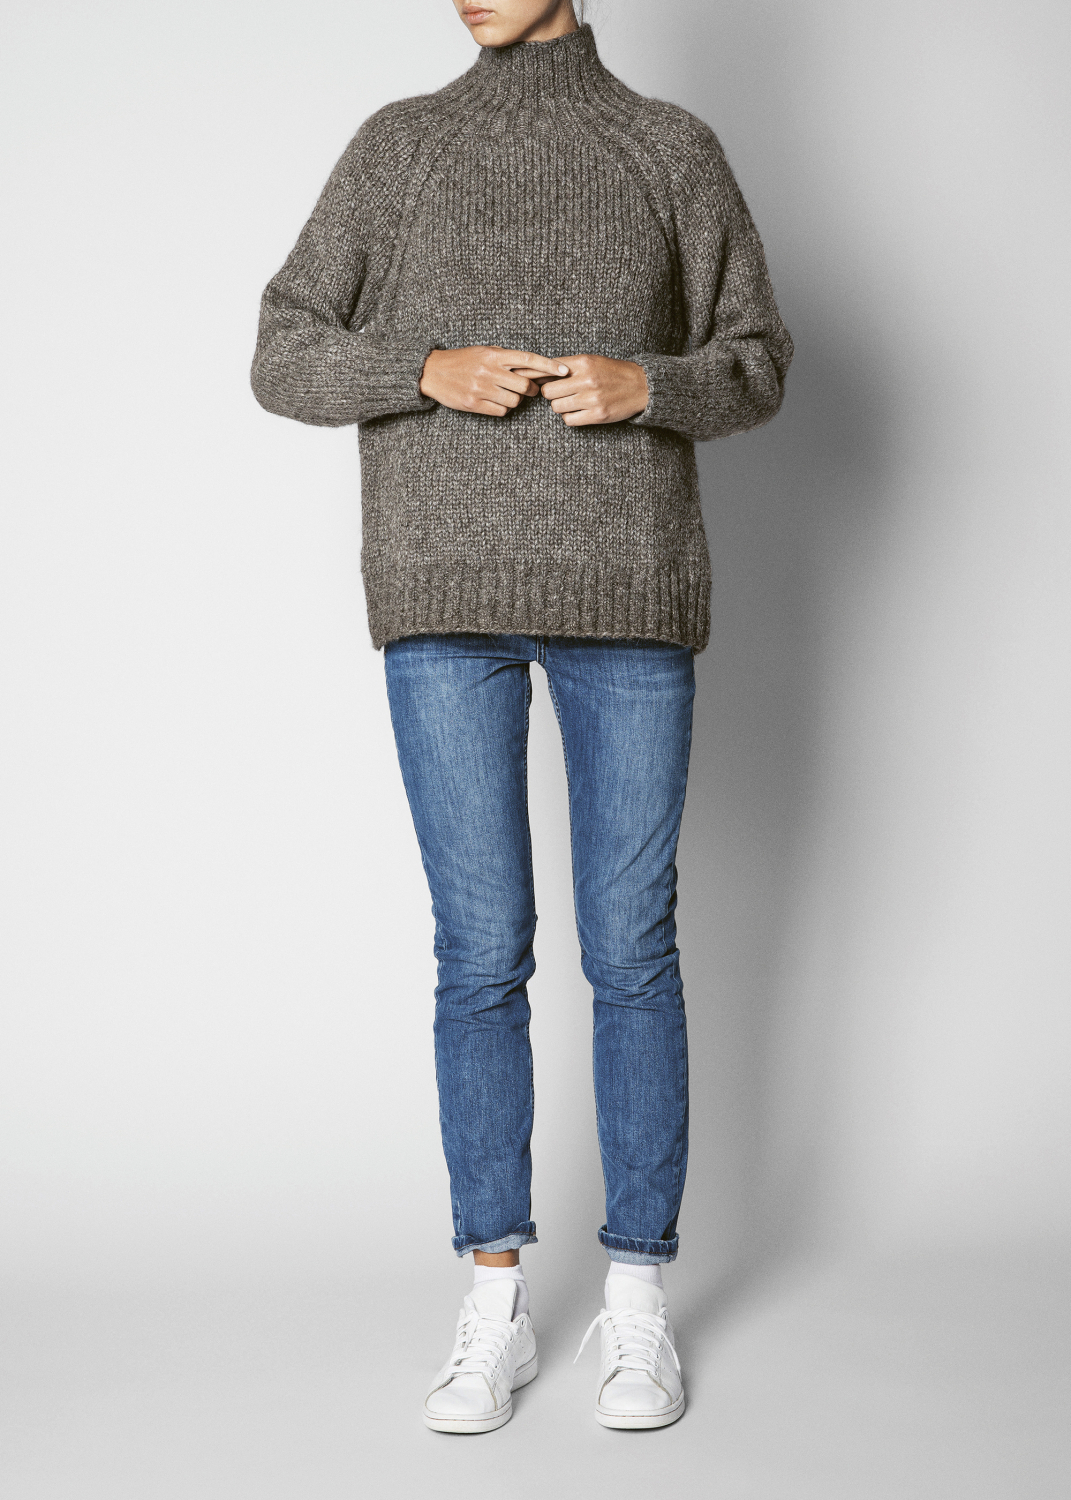 Knits - Mechera Sweater Thumbnail